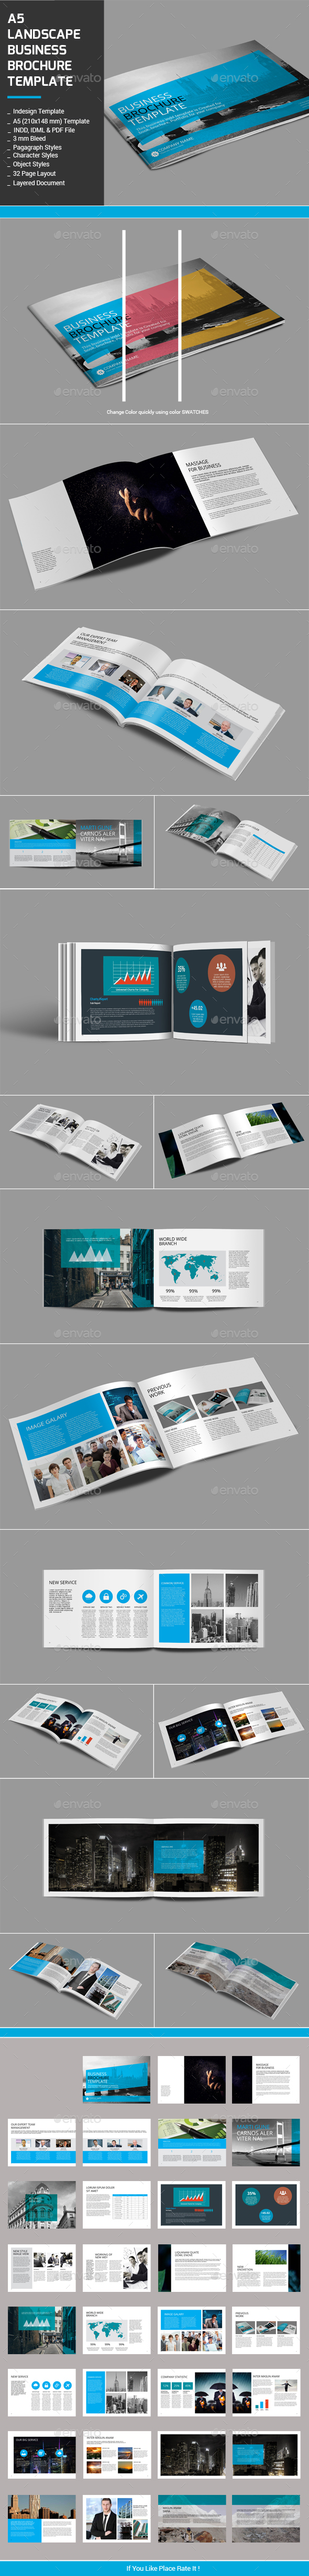 A5 Landscape Business Brochure Template - Proposals & Invoices Stationery